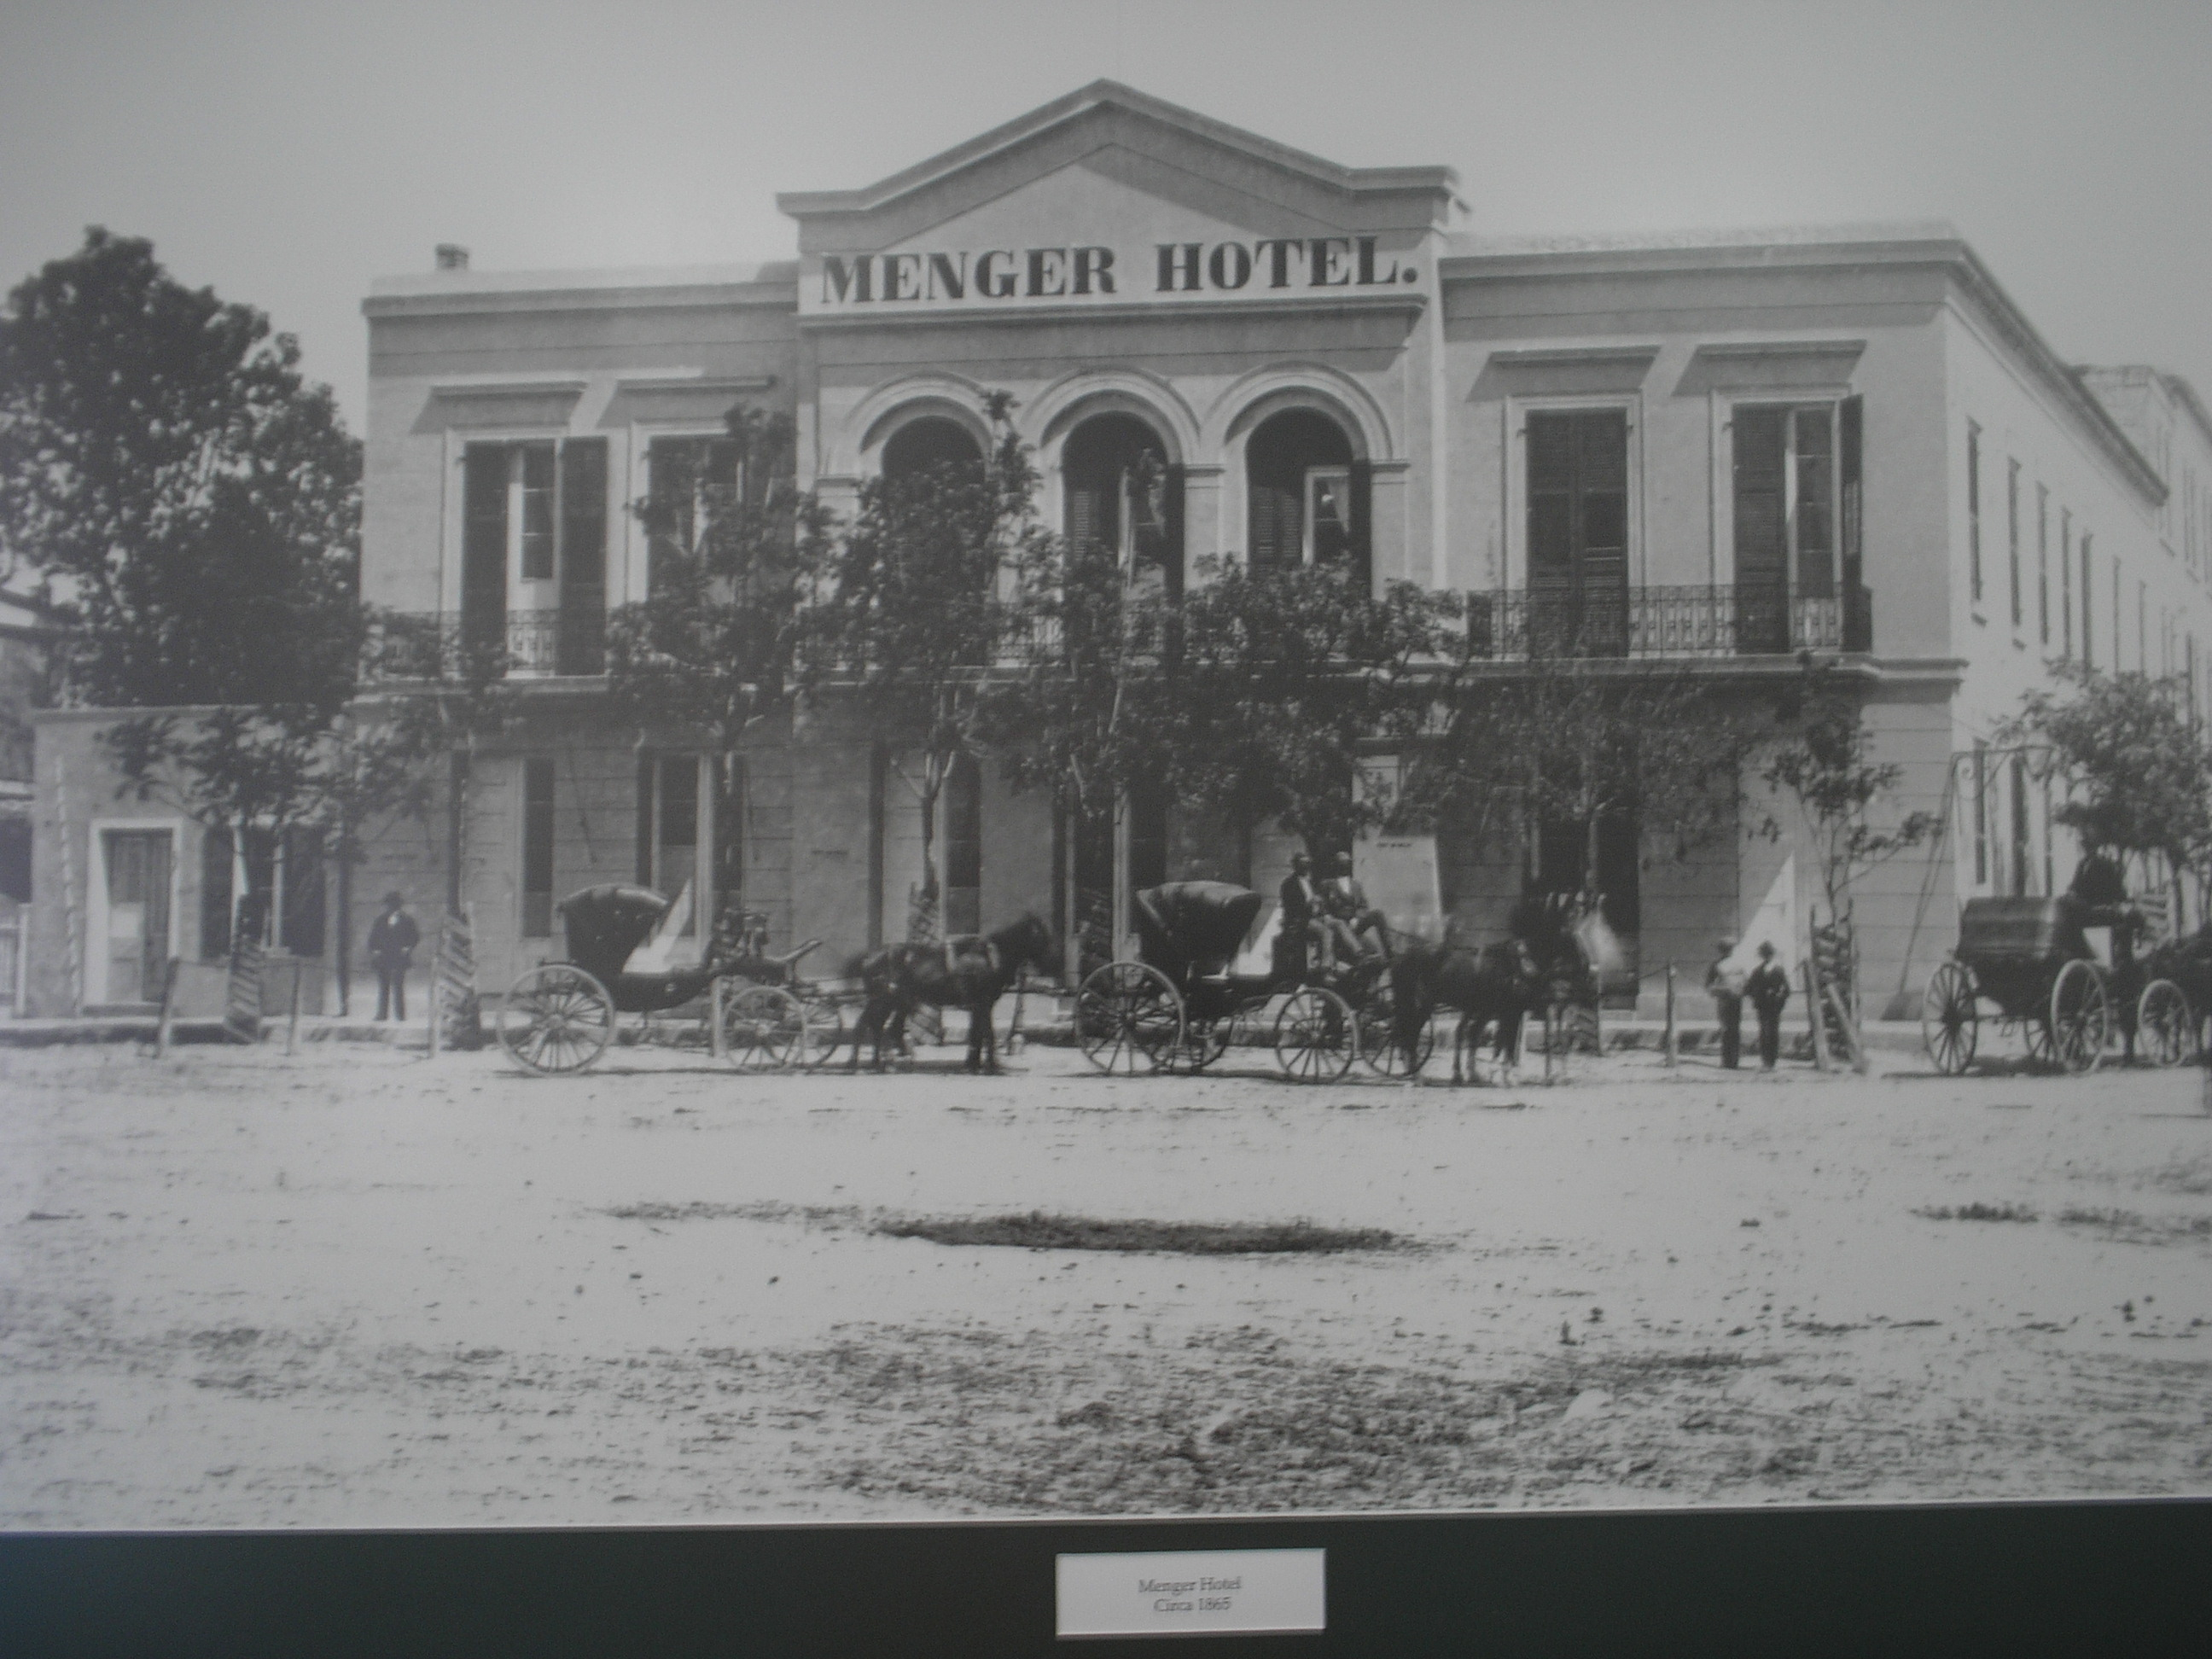 A photo of the hotel in the nineteenth century.